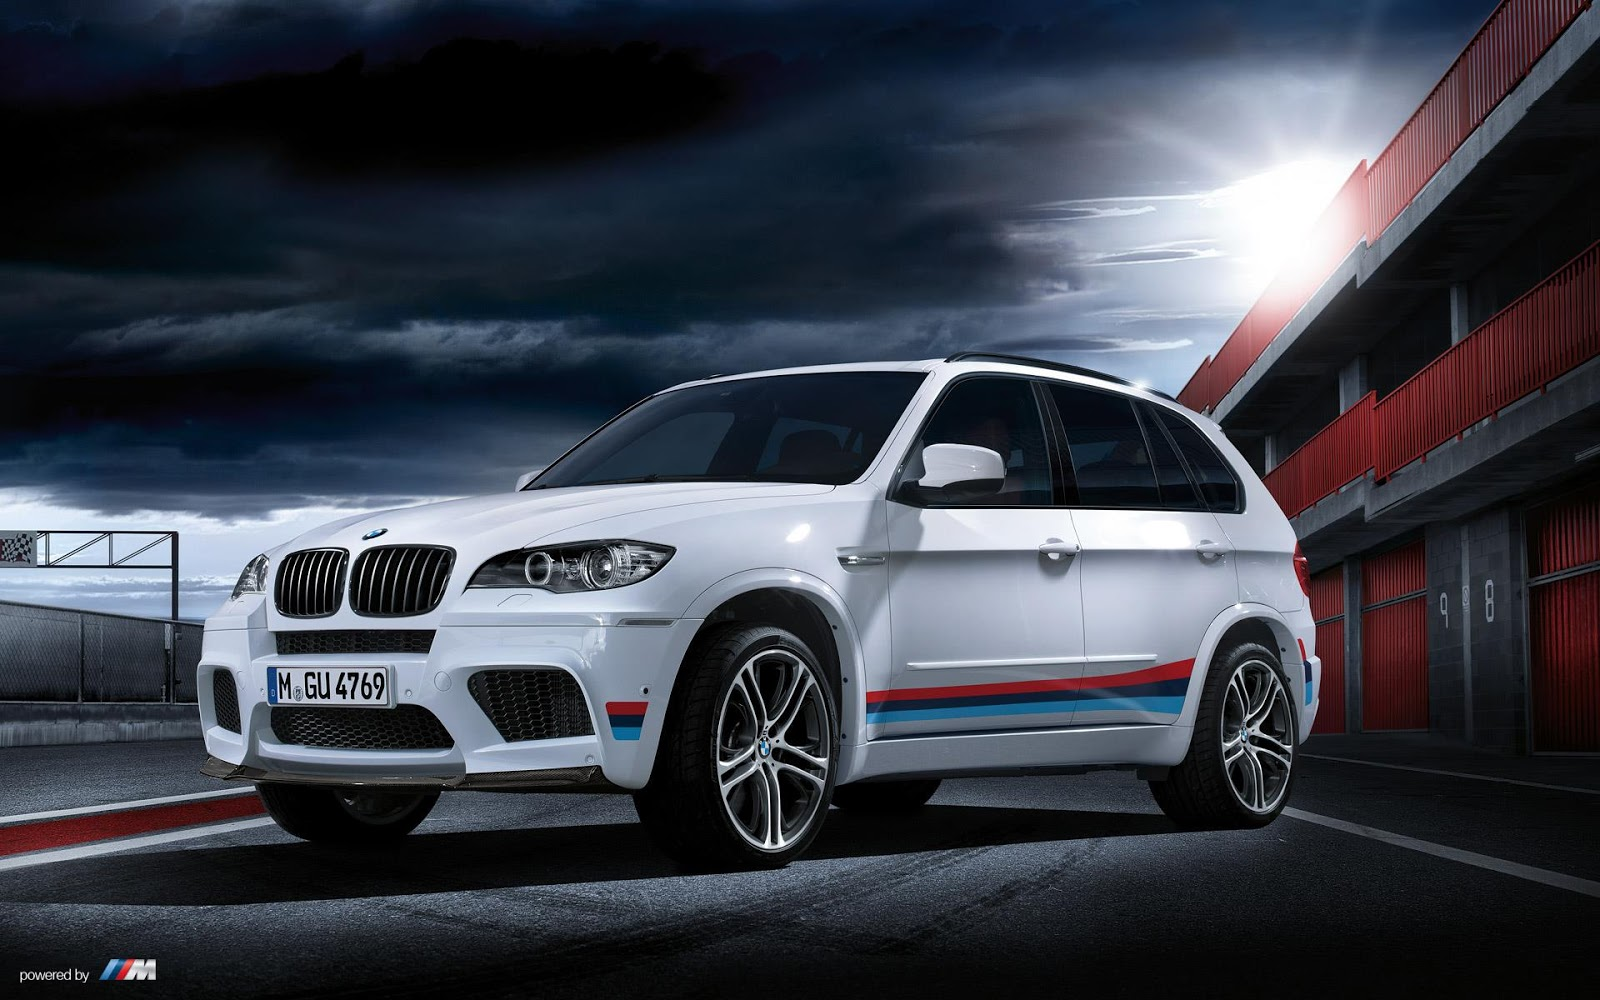 wallpapers of beautiful cars bmw m performance parts part 1 stripes wallpaper